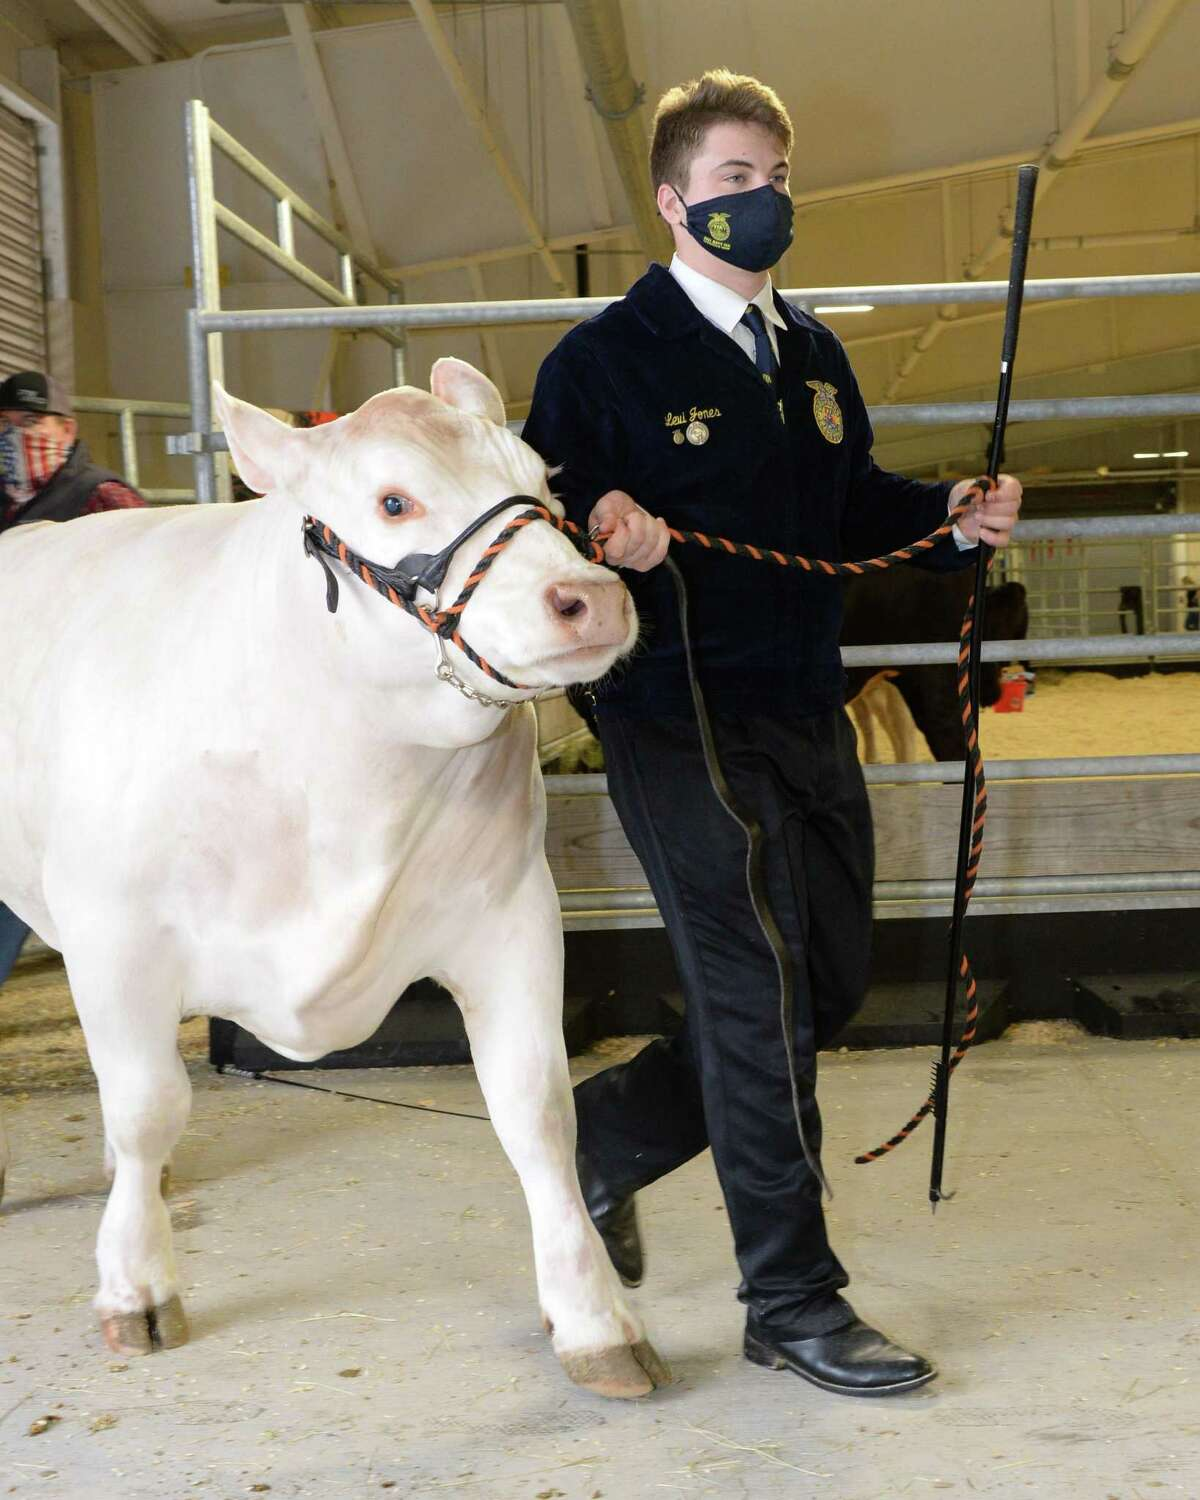 Levi Jones of Seven Lakes High School leads his steer to the arena during the 78th Annual Katy ISD FFA Livestock Show on Thursday, Feb. 25, at the Gerald D. Young Agricultural Sciences Center in Katy.